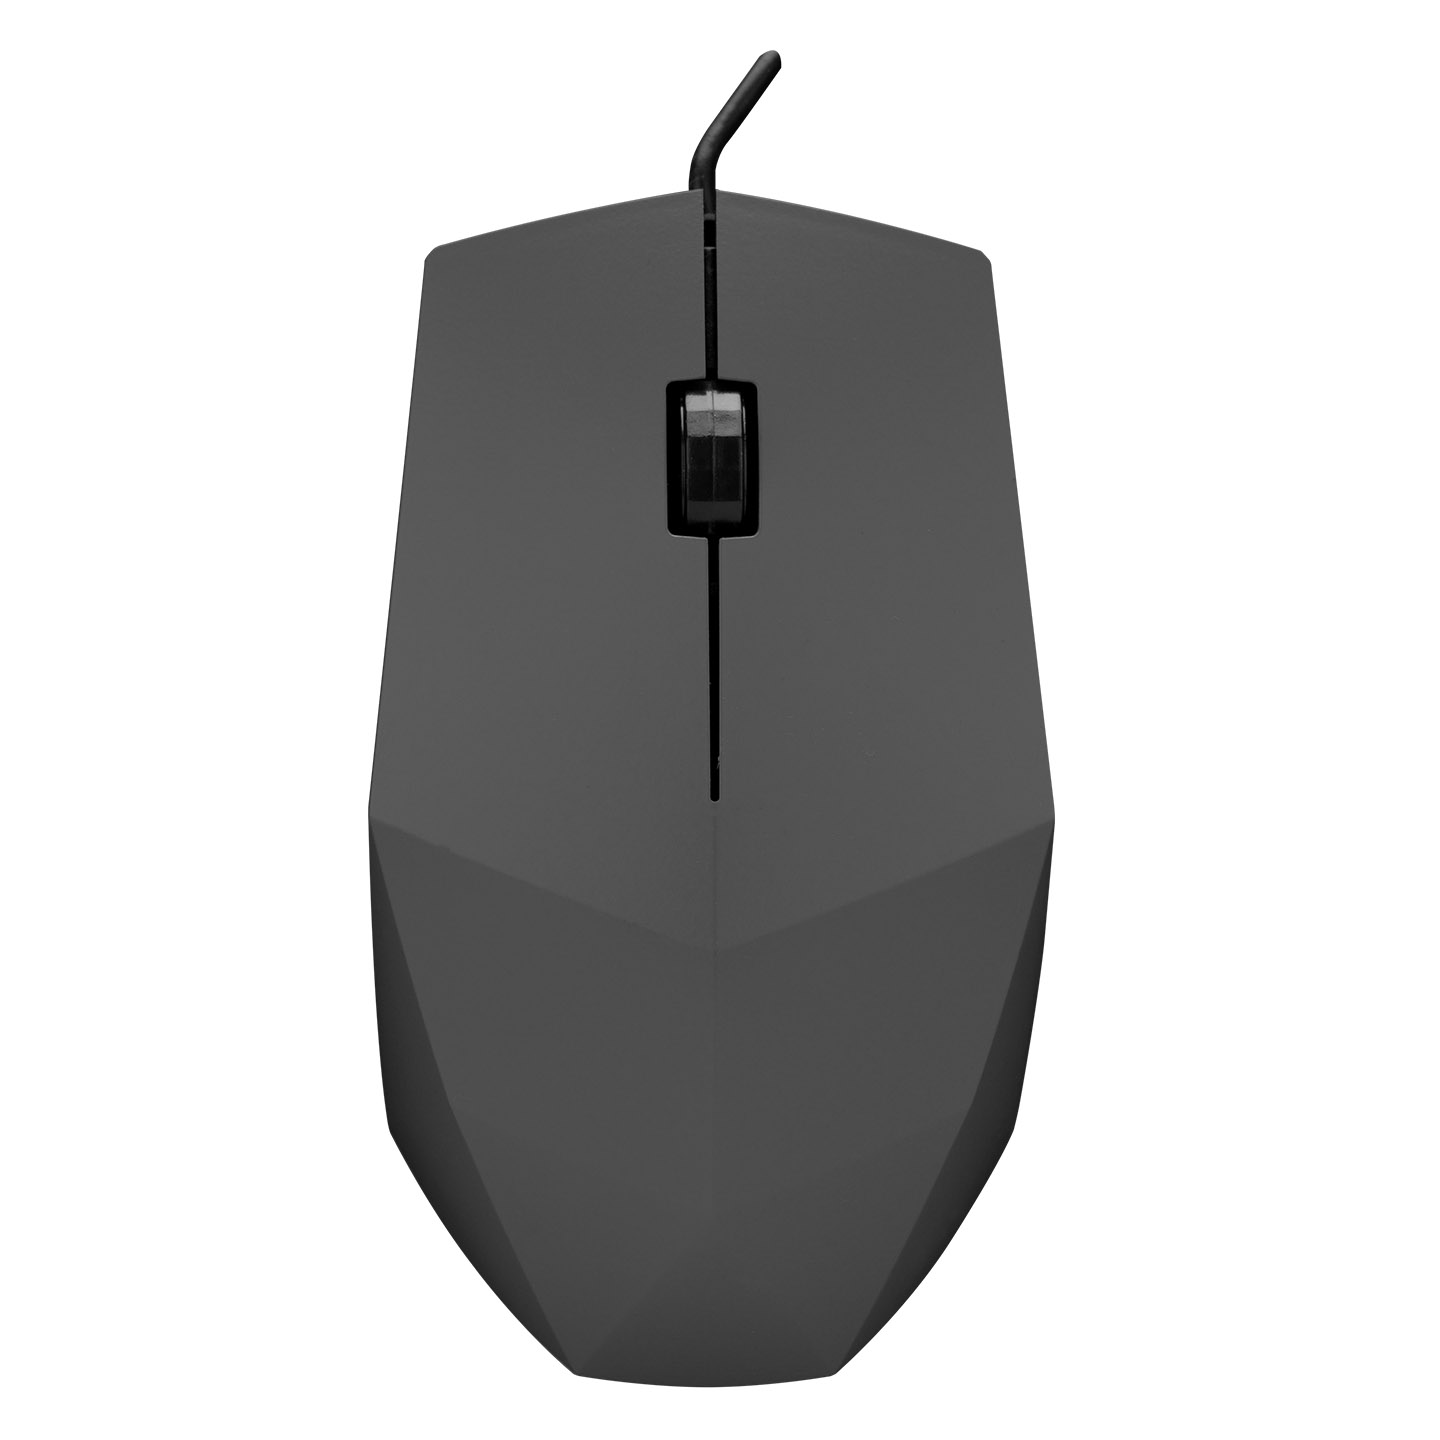 Everest SM-201 Usb Gri 1200dpi Optik Kablolu Mouse